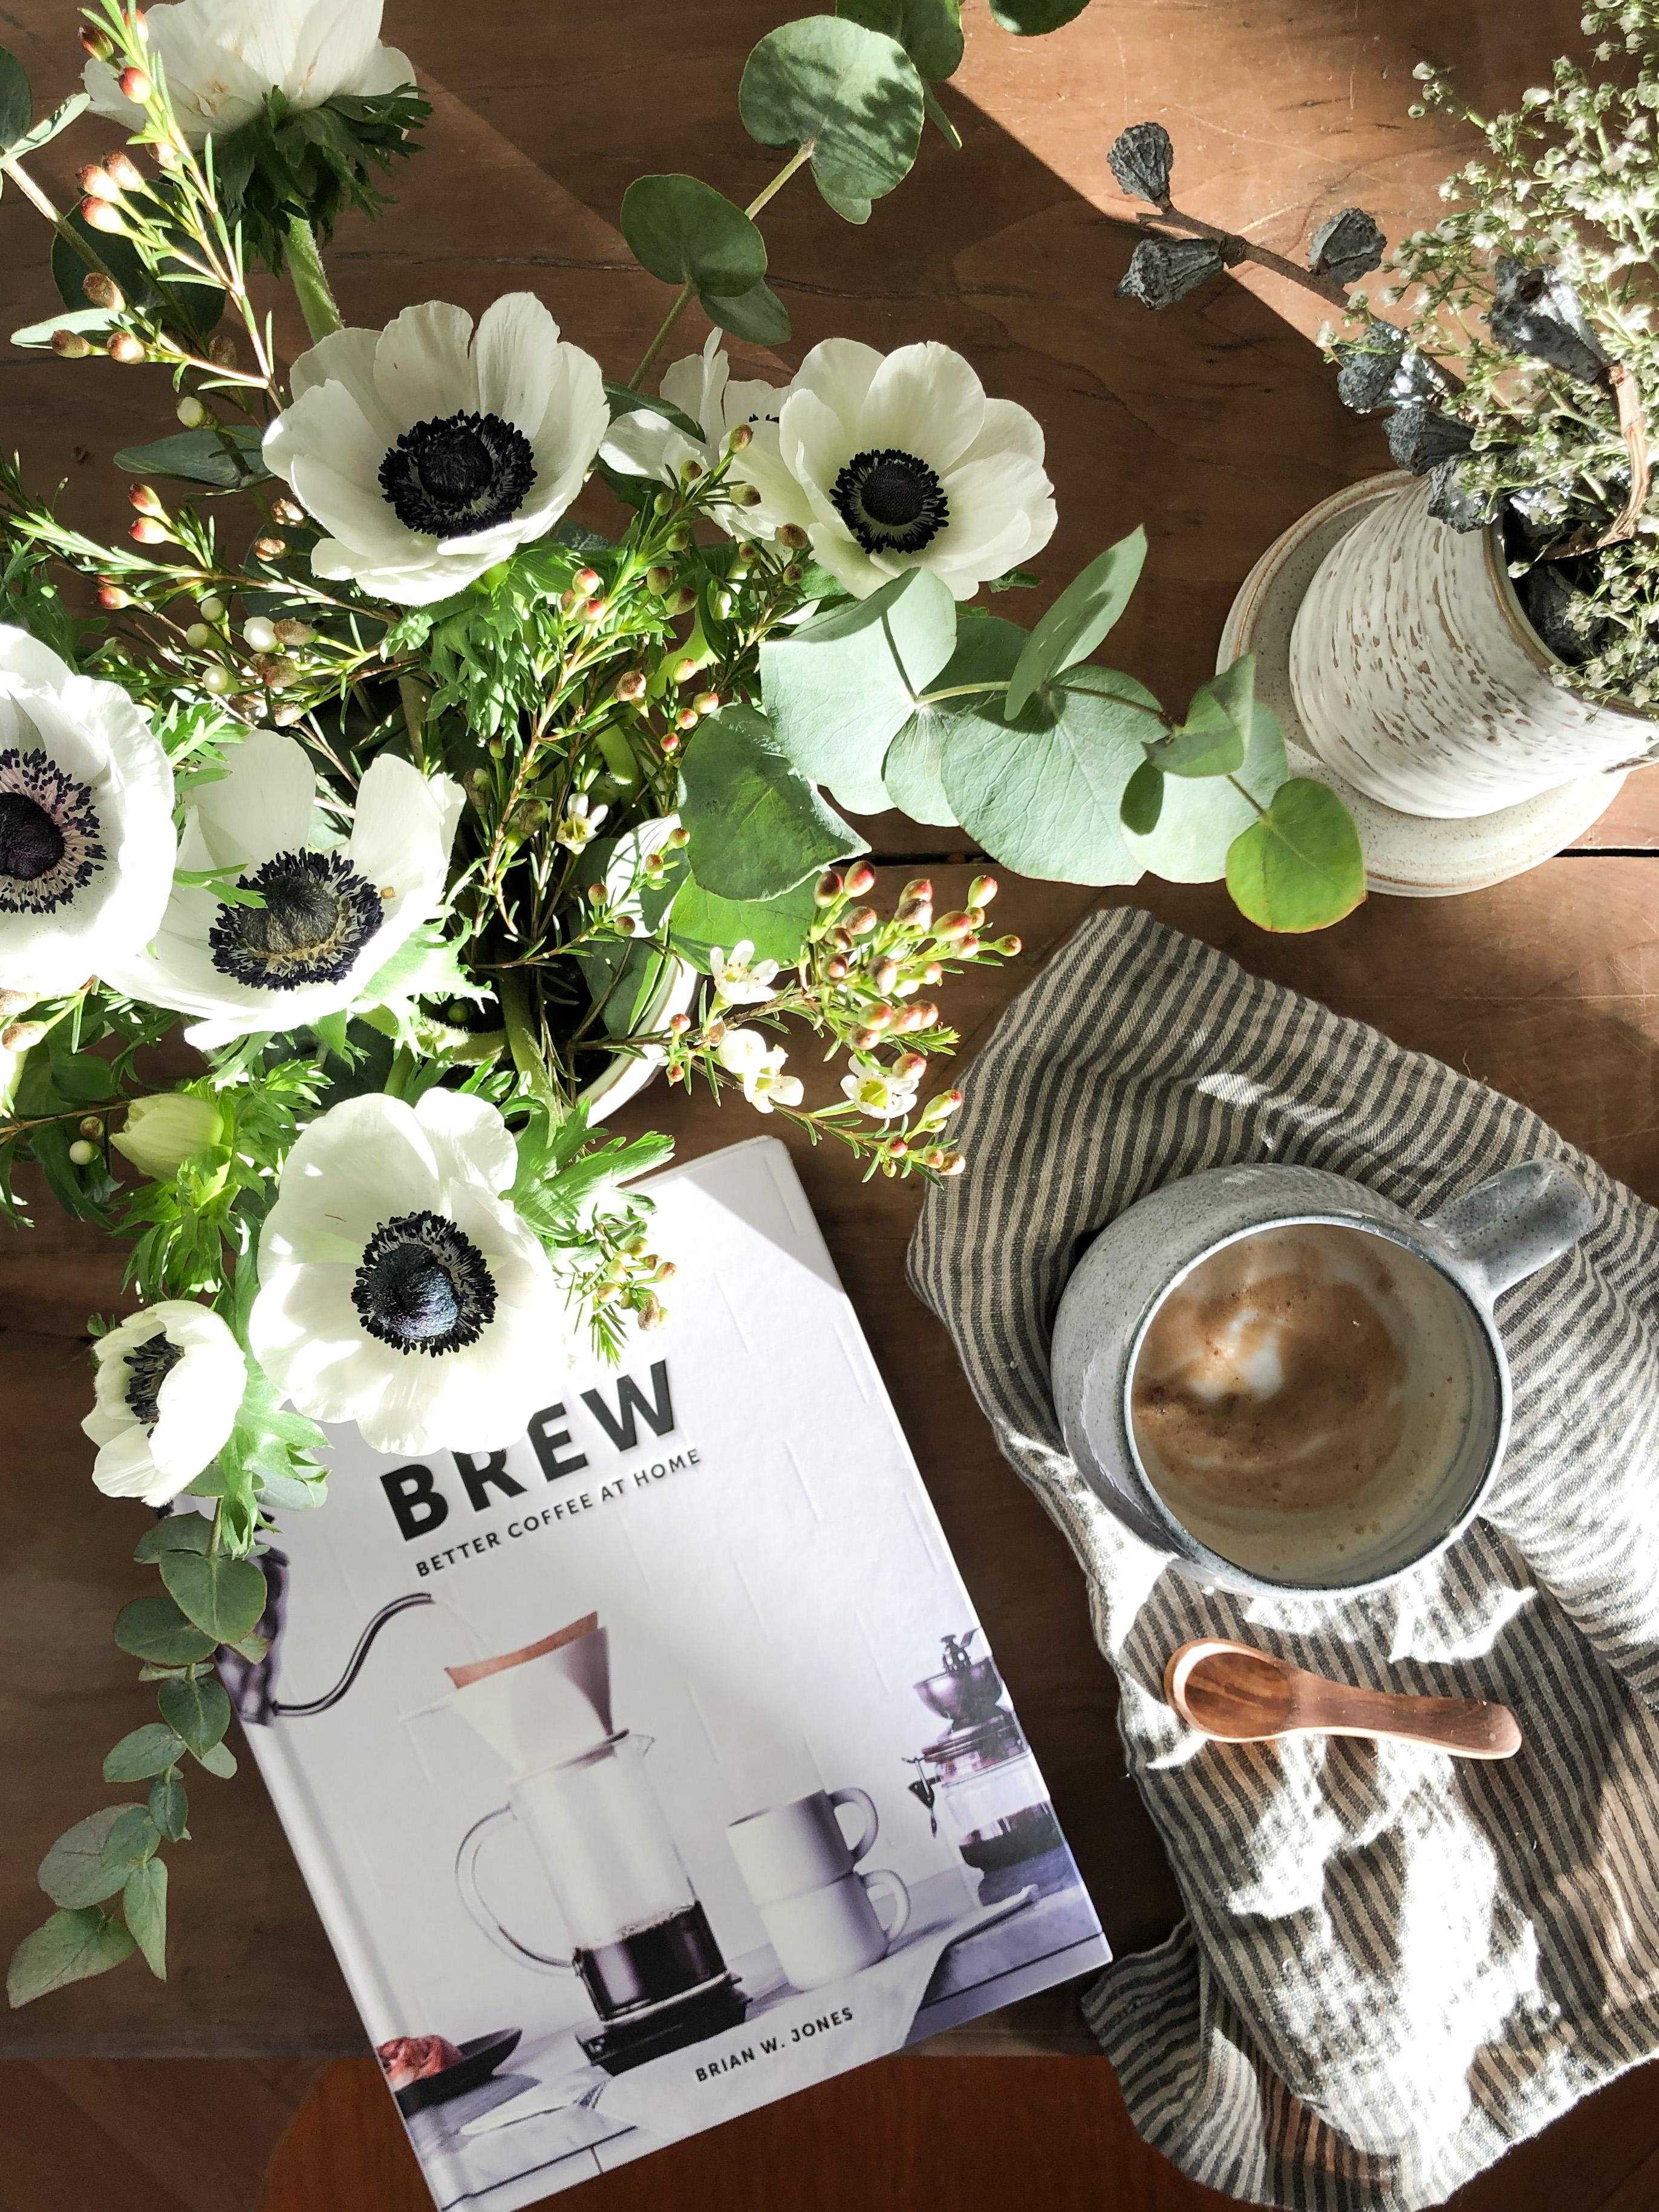 #goodmorning #coffee and #flowers